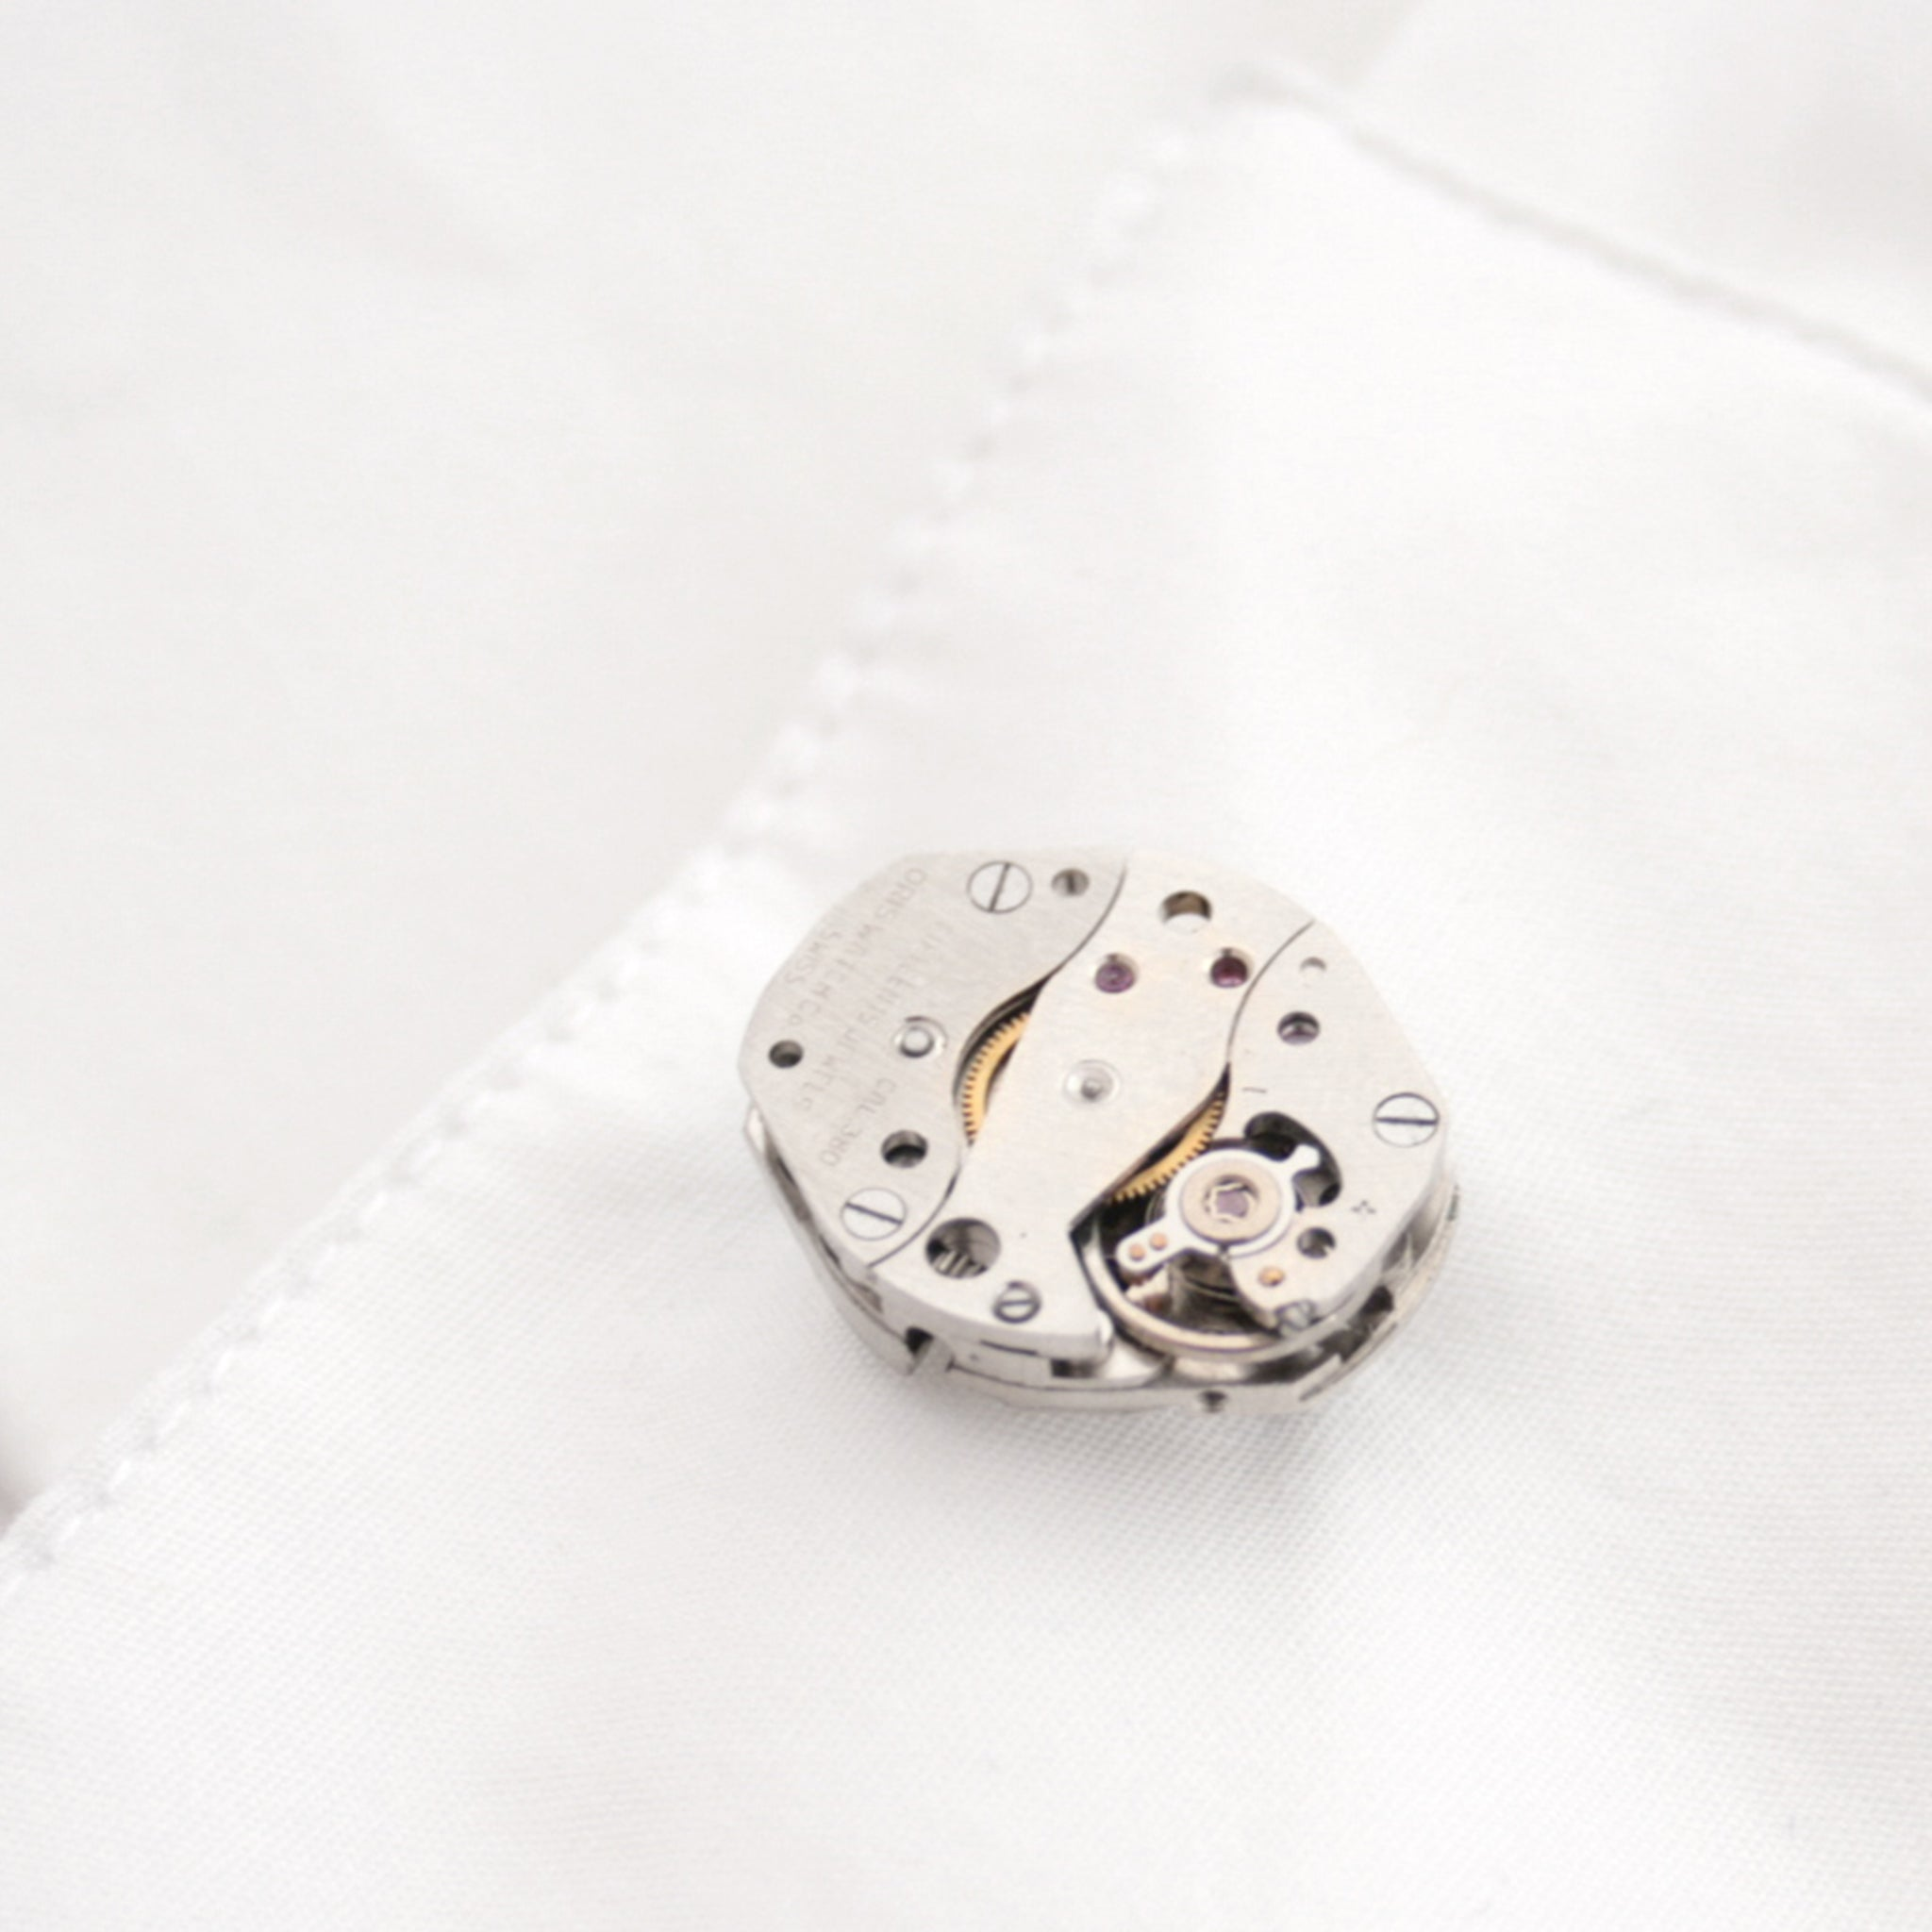 cool watch cufflinks for men featuring antique movements in shirt's cuff